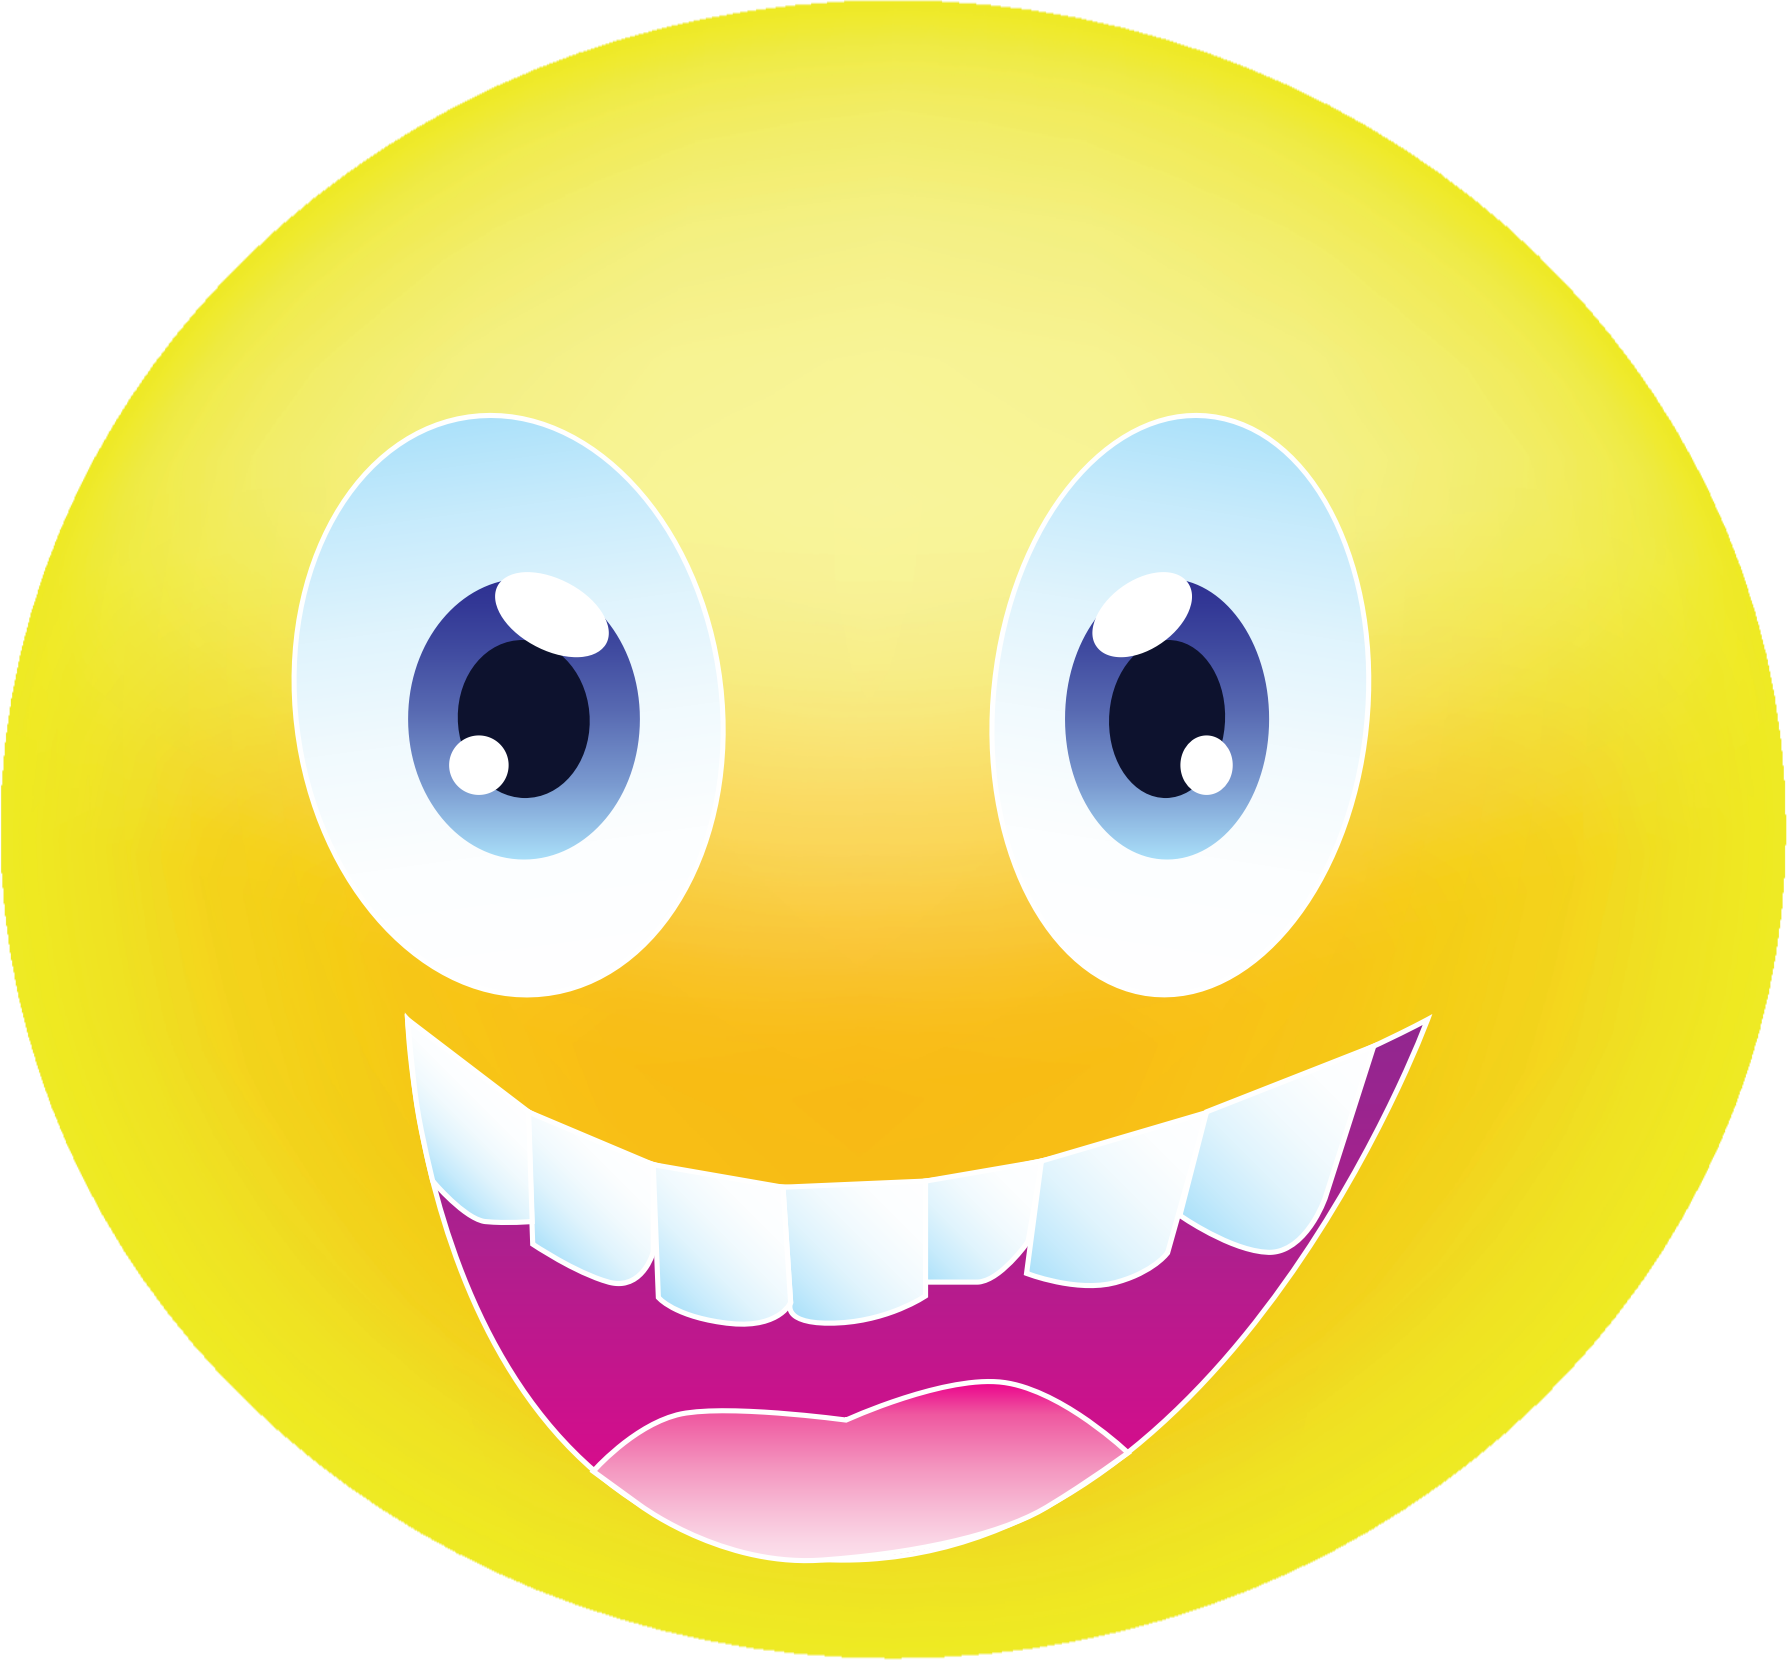 Smiley face sun clipart png royalty free library ➡➡ :) Smiley Face Clip Arts Emotions Faces Images Pictures Vectors ... png royalty free library